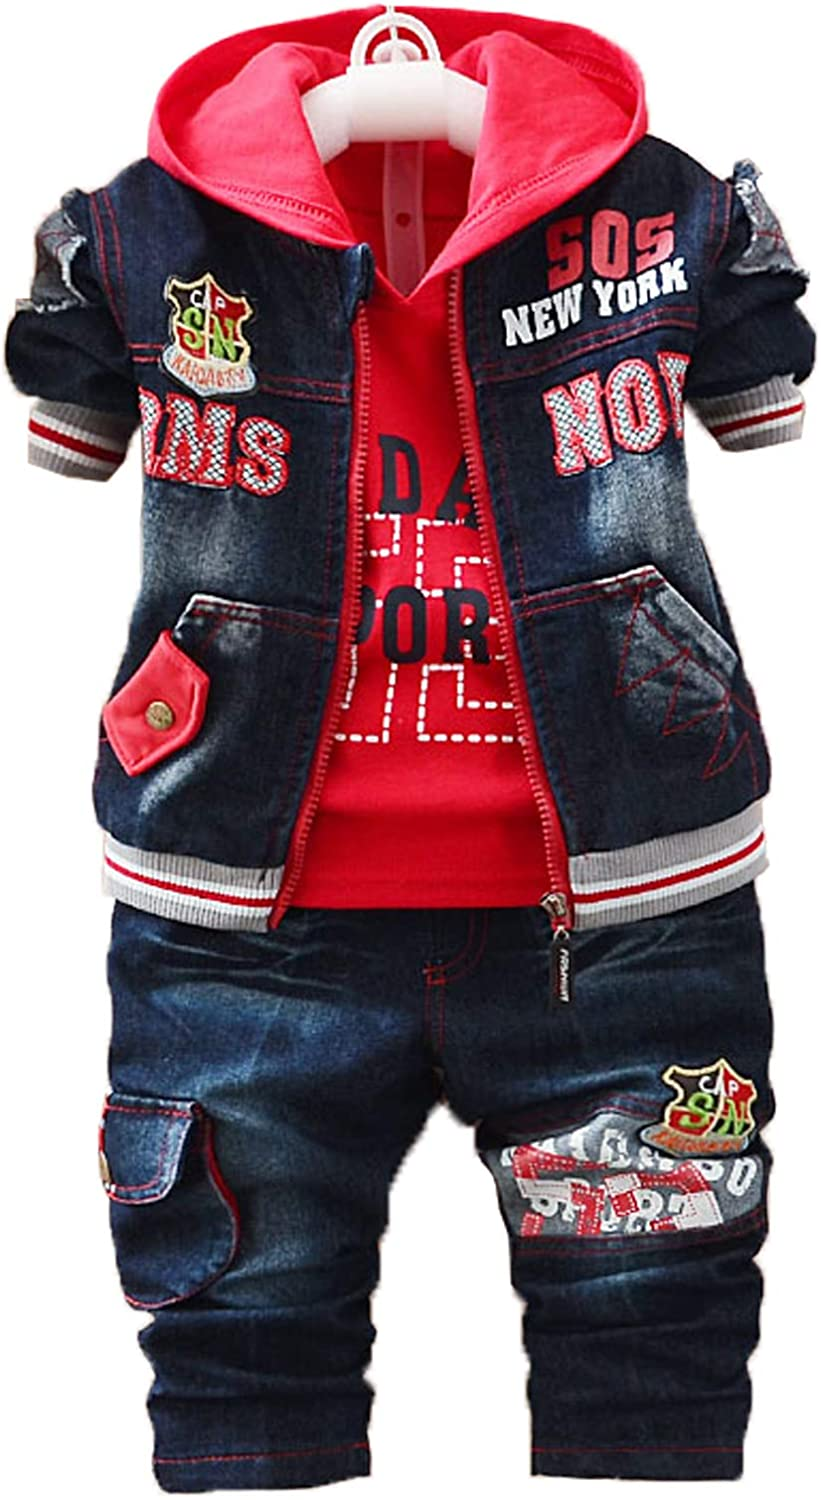 Yao Spring Autumn Baby Boys 3pcs Clothing Set Cotton Shirt...